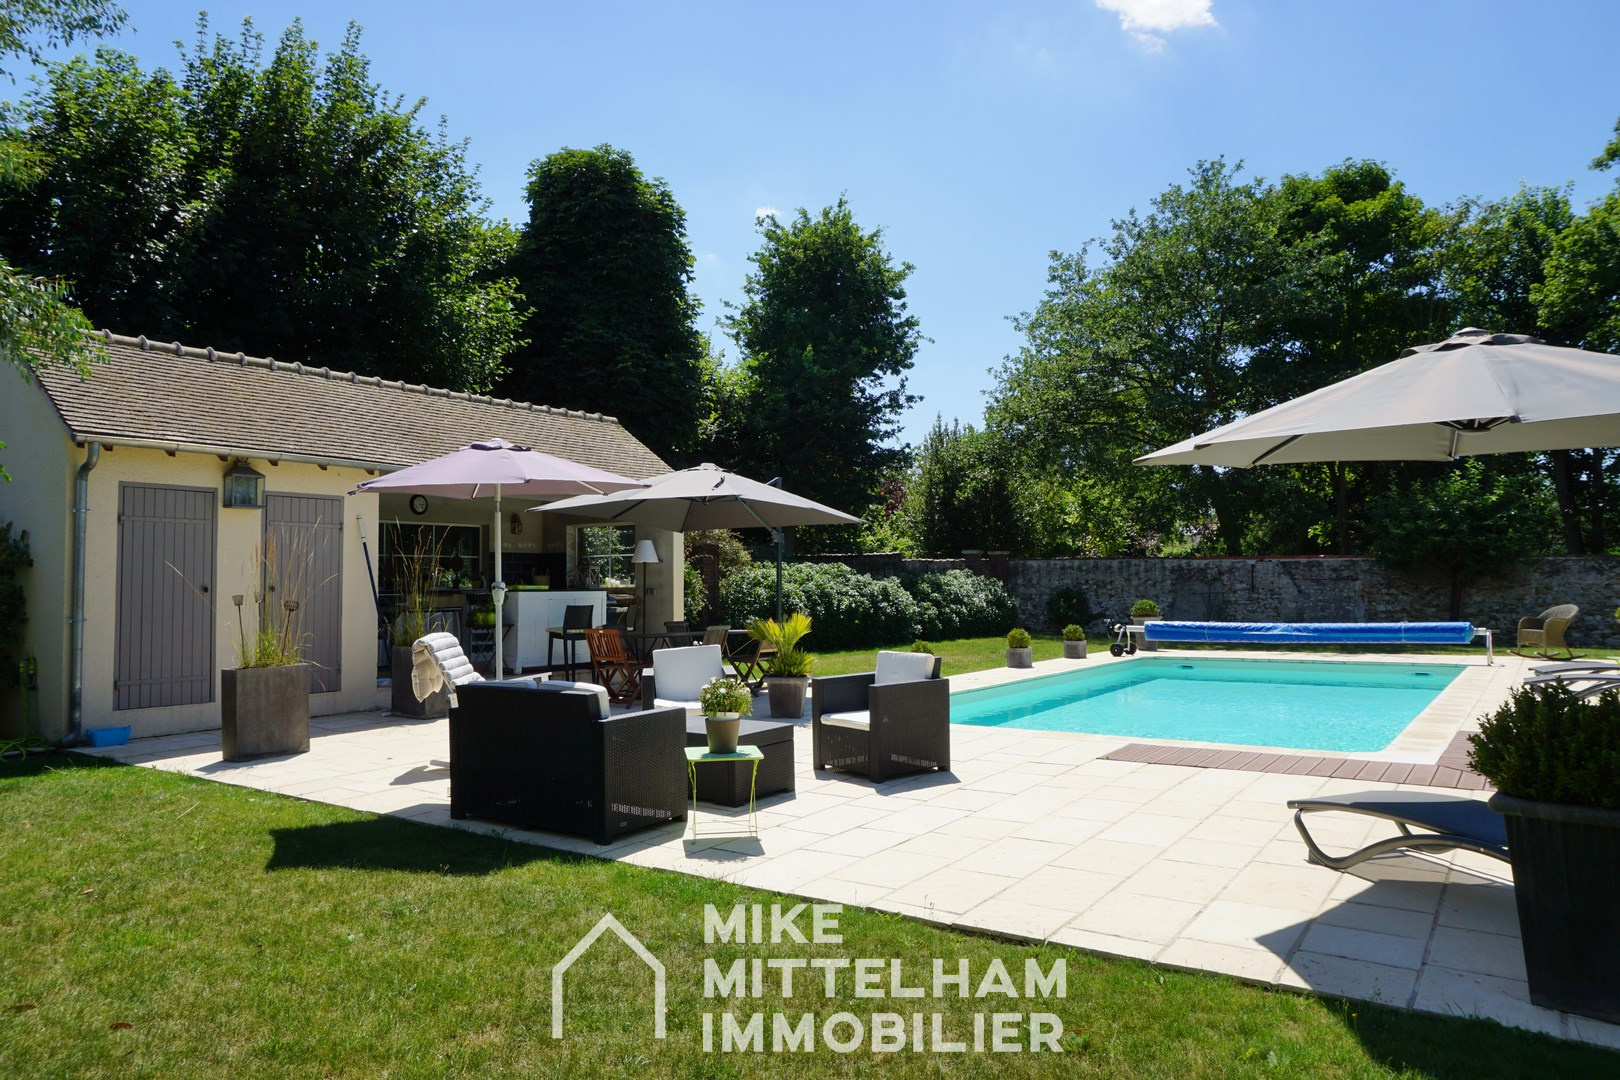 Mike mittelham immobilier agence immobili re montfort l for Agence immobiliere 78